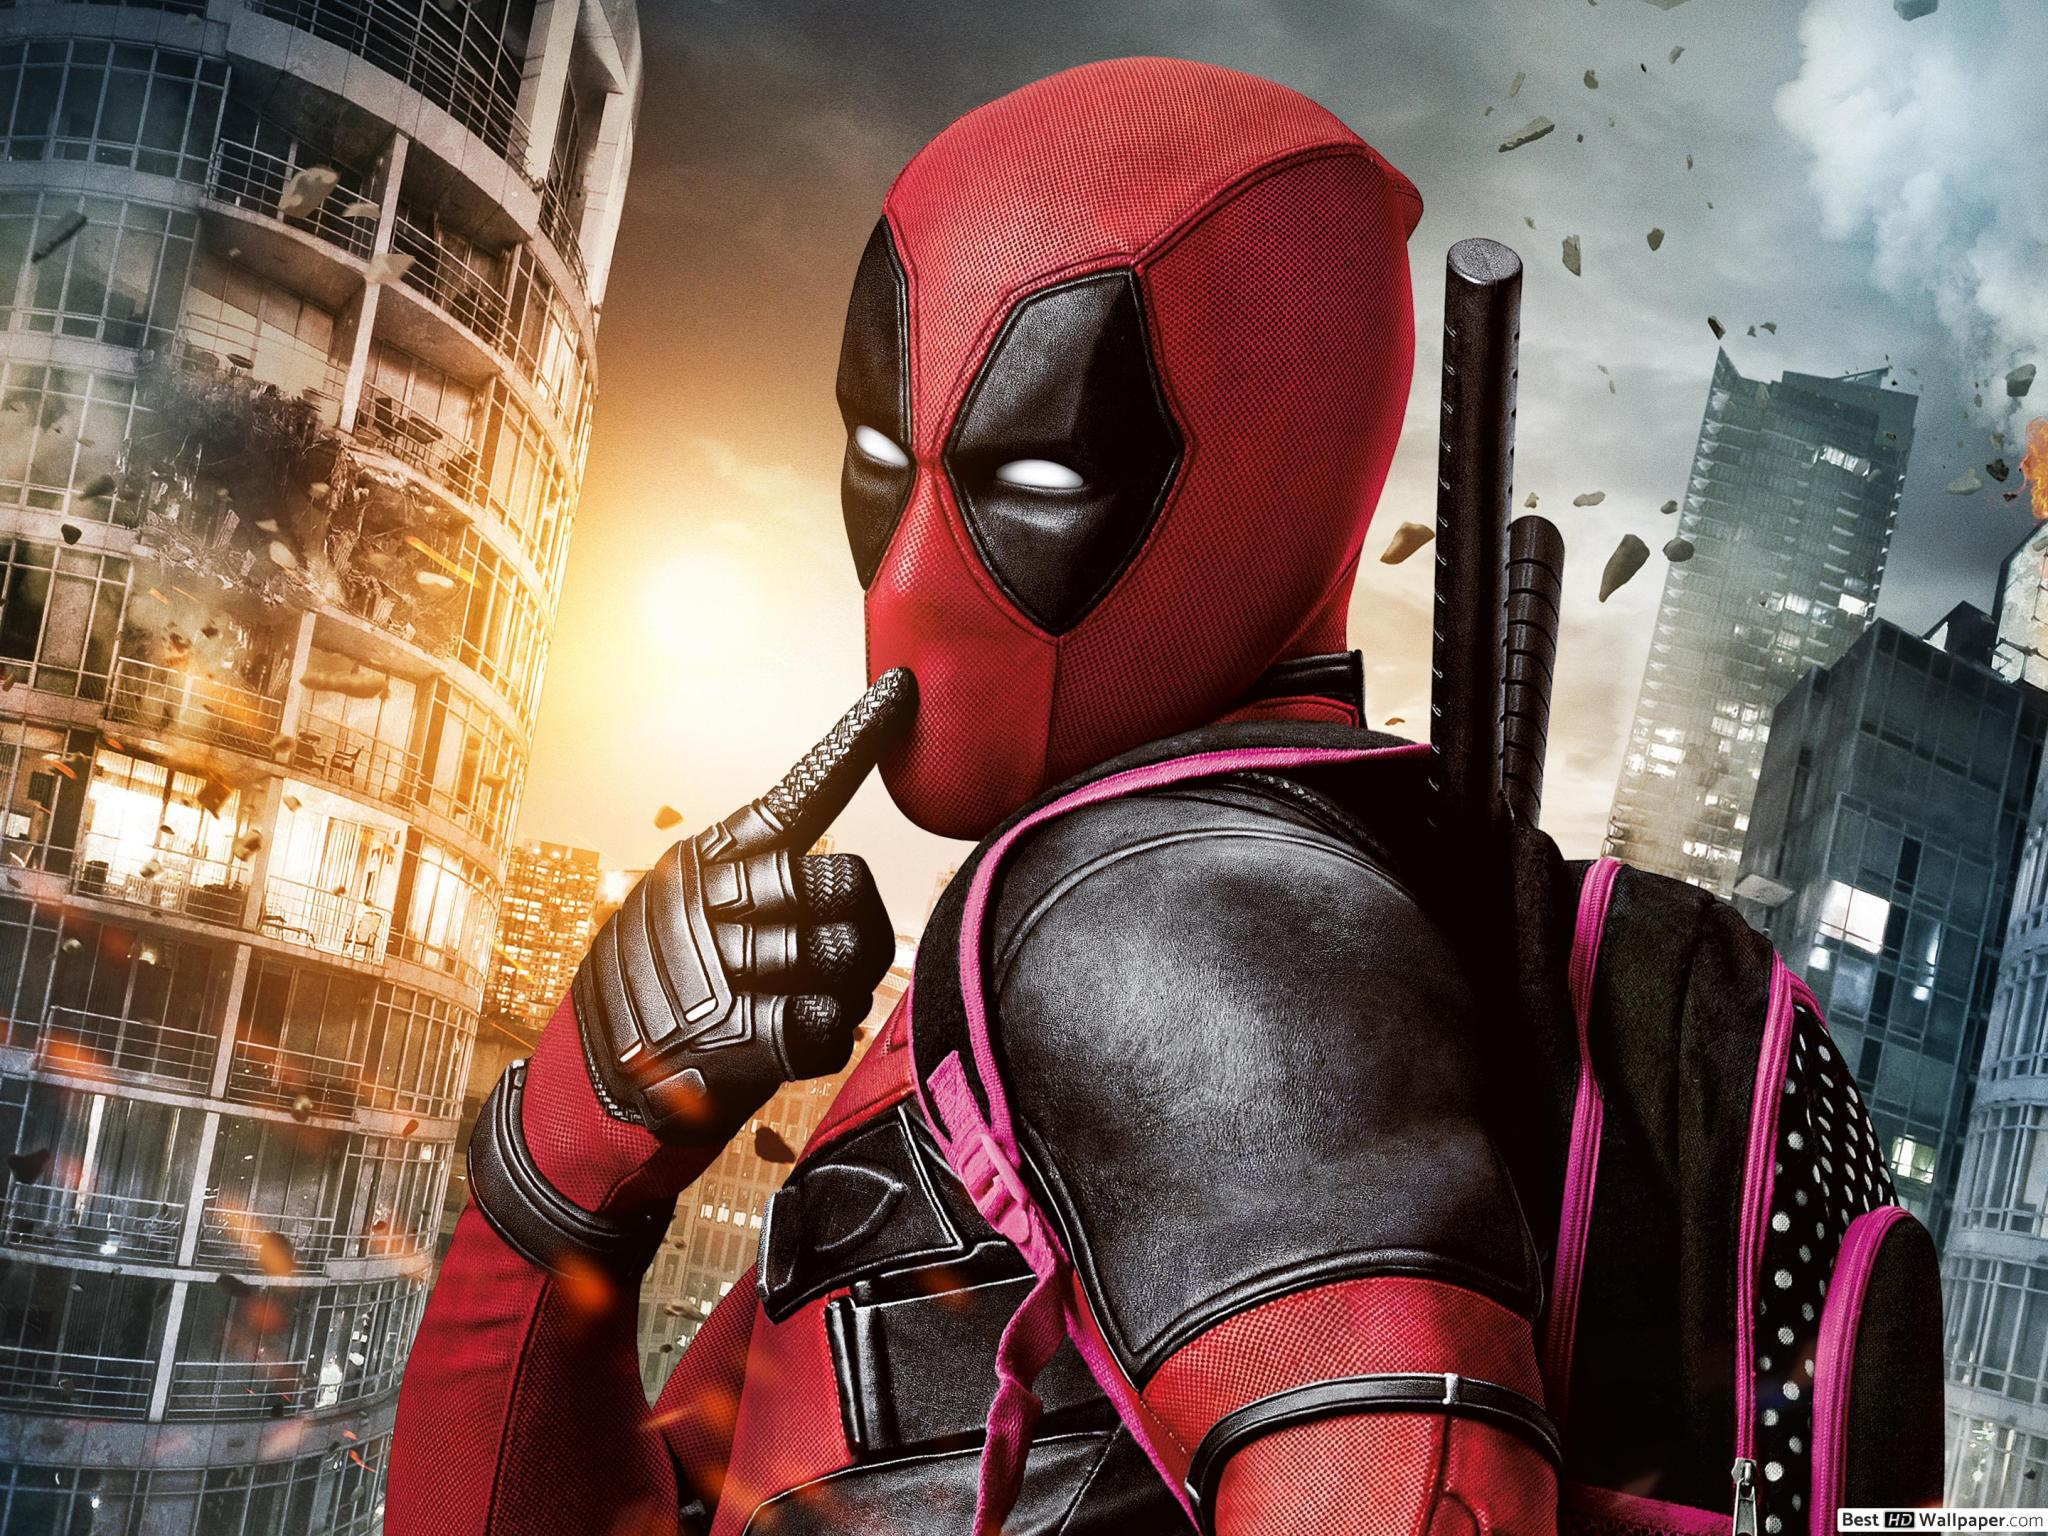 The most exciting rumor is about the welcoming of Deadpool 2, with reports claiming it will introduce Deadpool in the MCU like Venom.